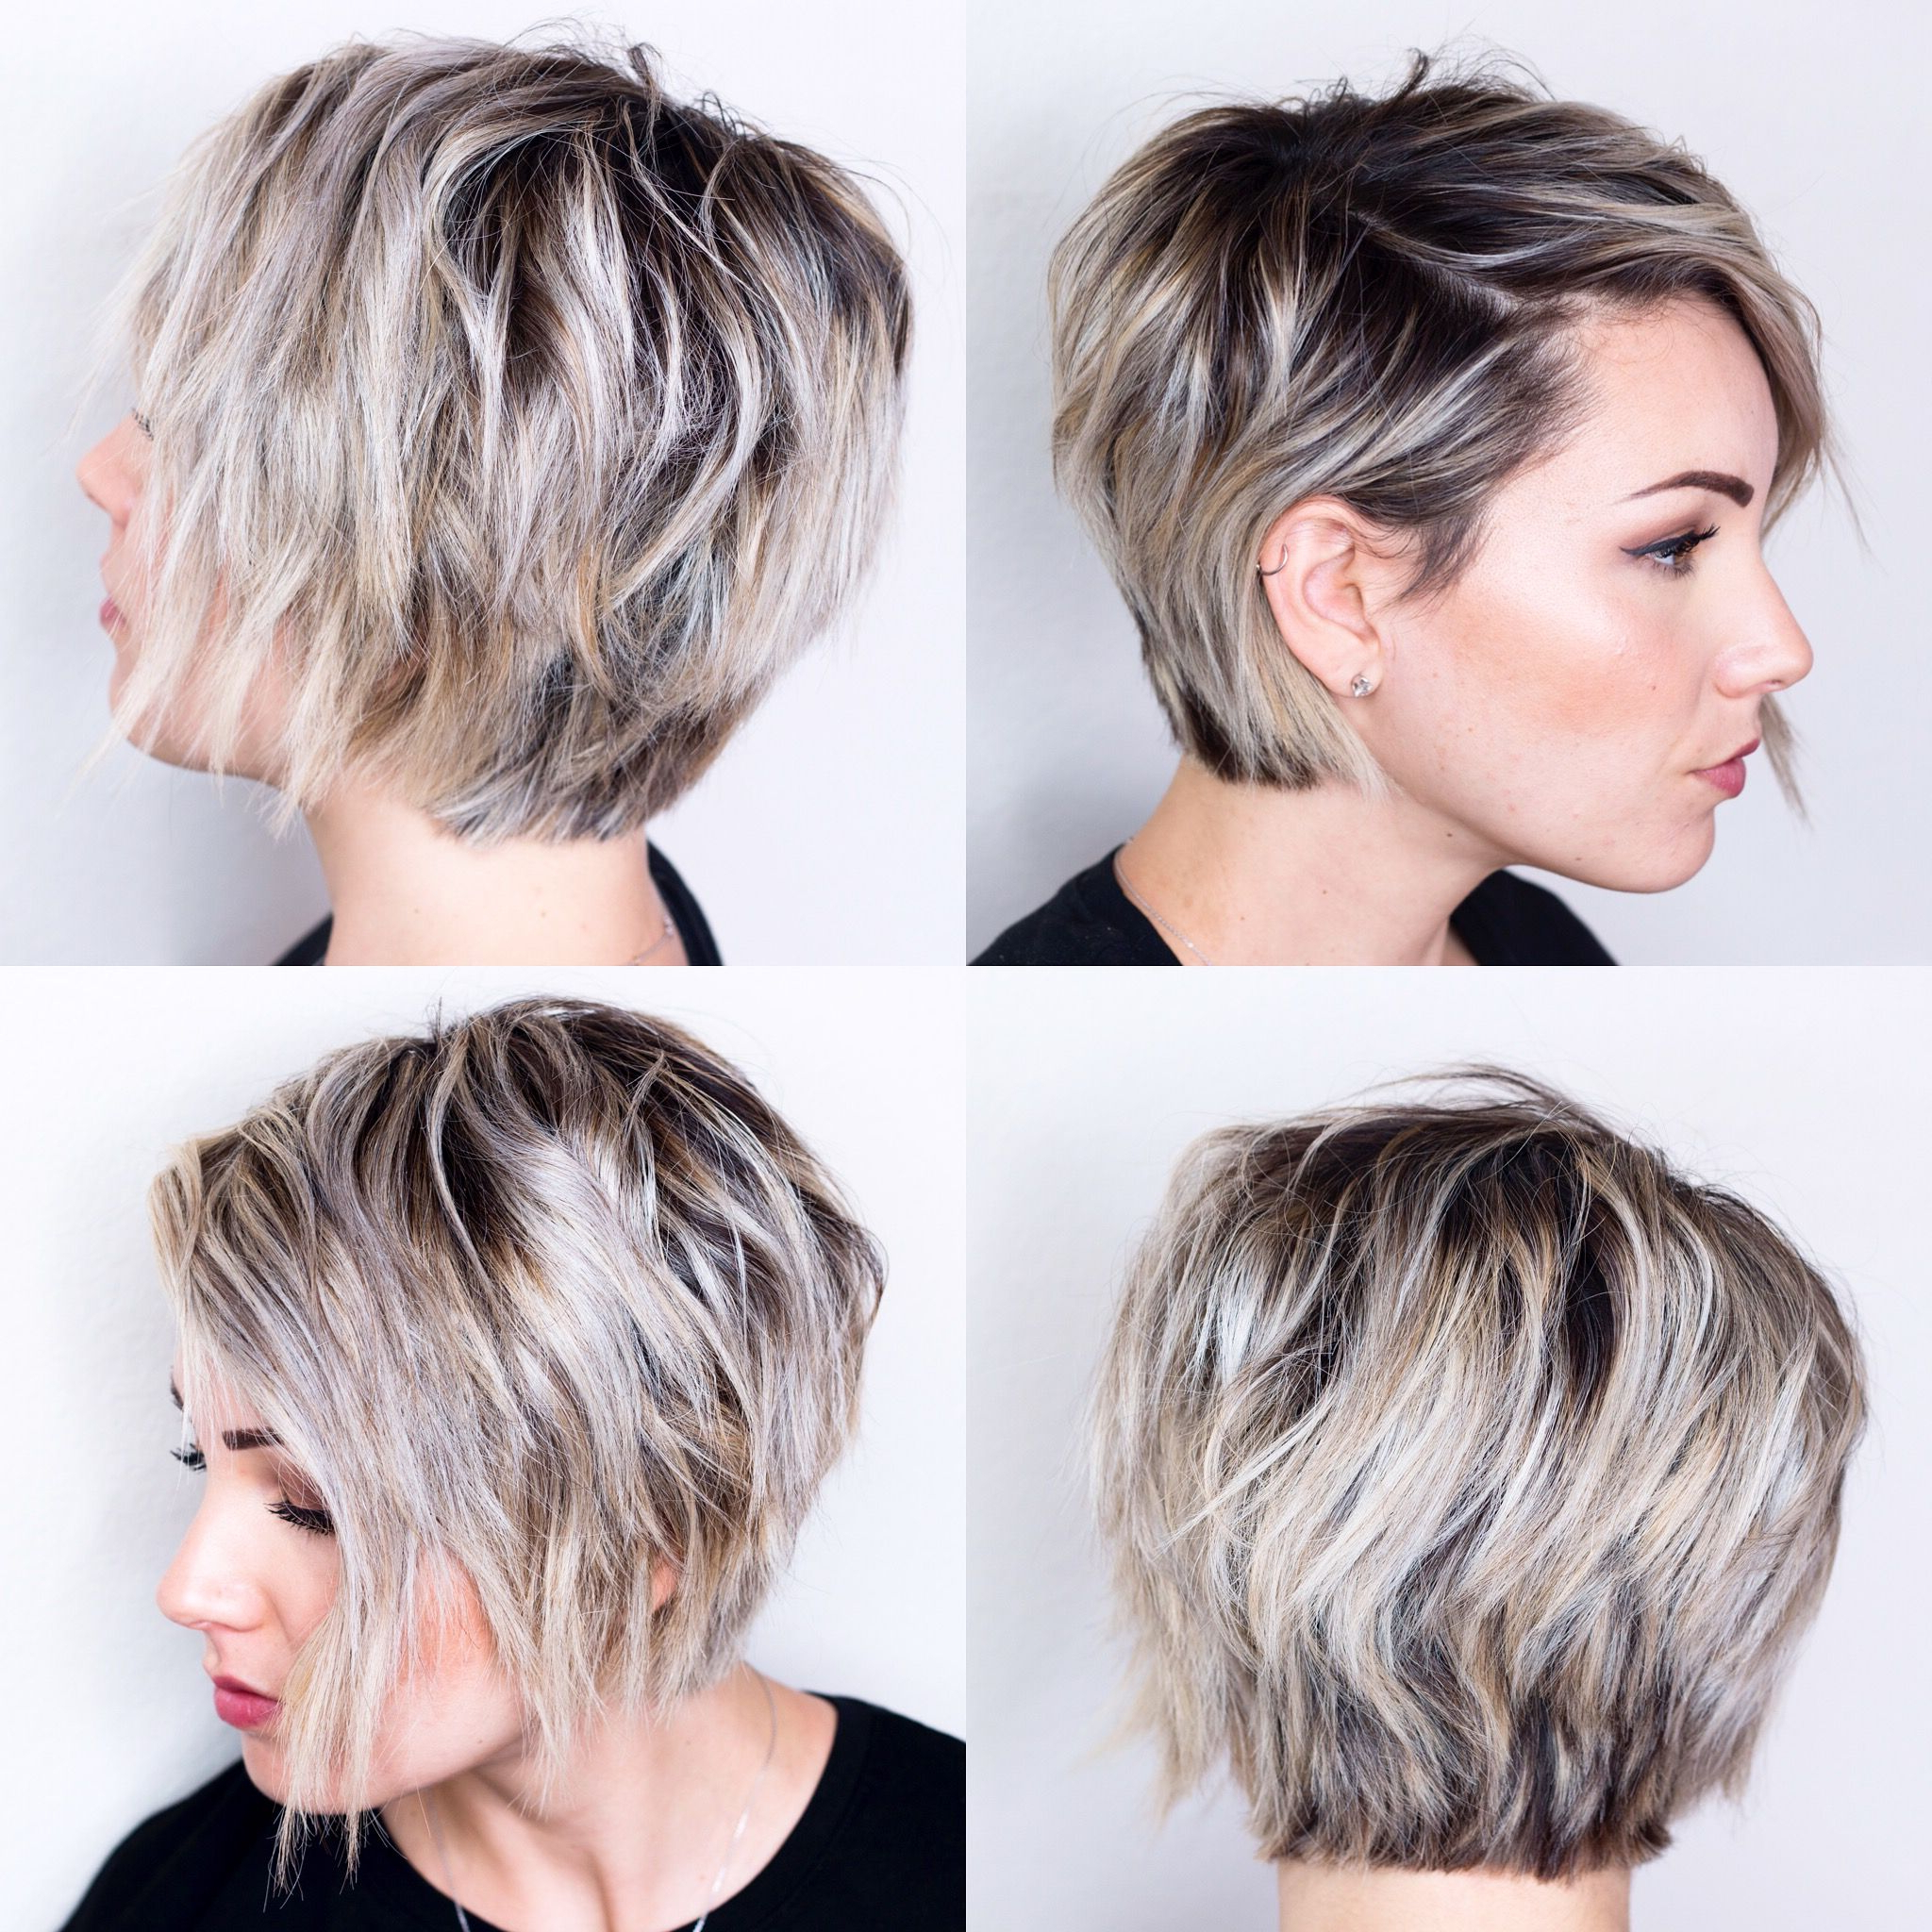 032 Very Short Edgy Hairstyles View Hair Styles Round Faces Throughout Pixie Haircuts With Large Curls (View 1 of 20)